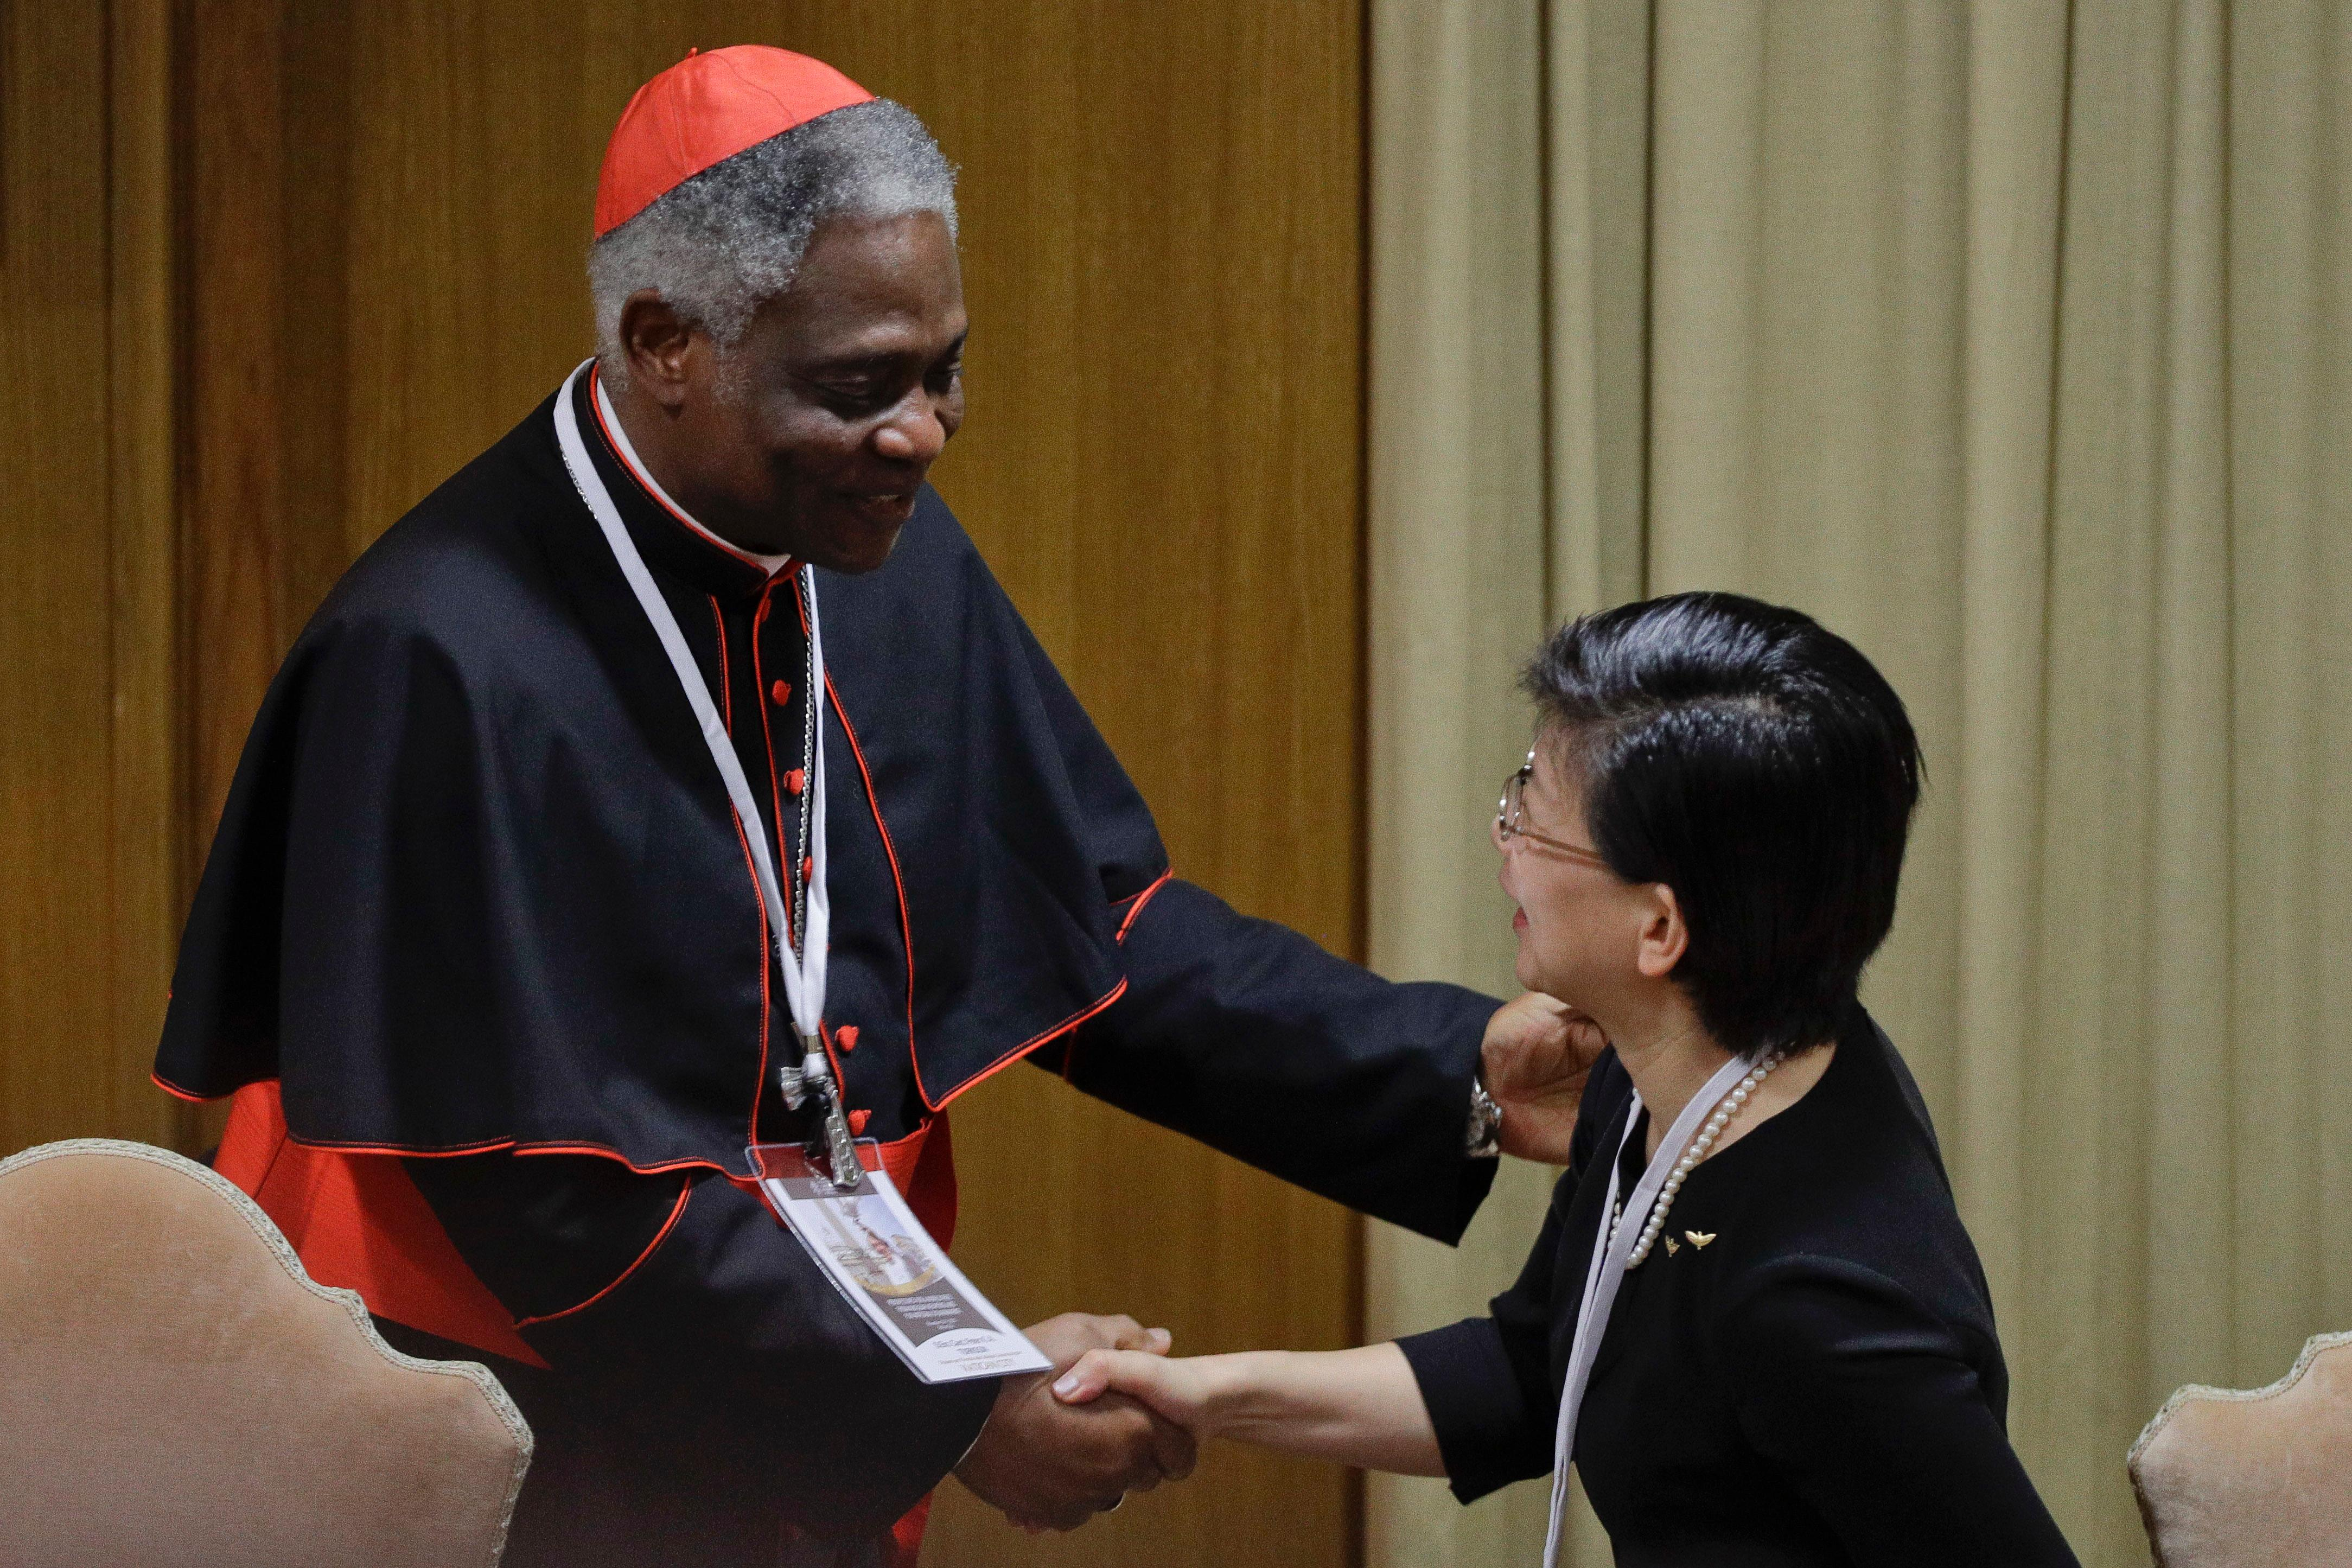 Cardinal Peter Kodwo Appiah Turkson, left, shakes hands with U.N. high representative for disarmament affairs Izumi Nakamitsu, during a conference on nuclear disarmament, at the Vatican, Friday, Nov. 10, 2017. The Vatican hosted Nobel laureates, U.N. and NATO officials and a handful of nuclear powers at a conference aimed at galvanizing support for a global shift from the Cold War era policy of nuclear deterrence to one of total nuclear disarmament.(AP Photo/Andrew Medichini)